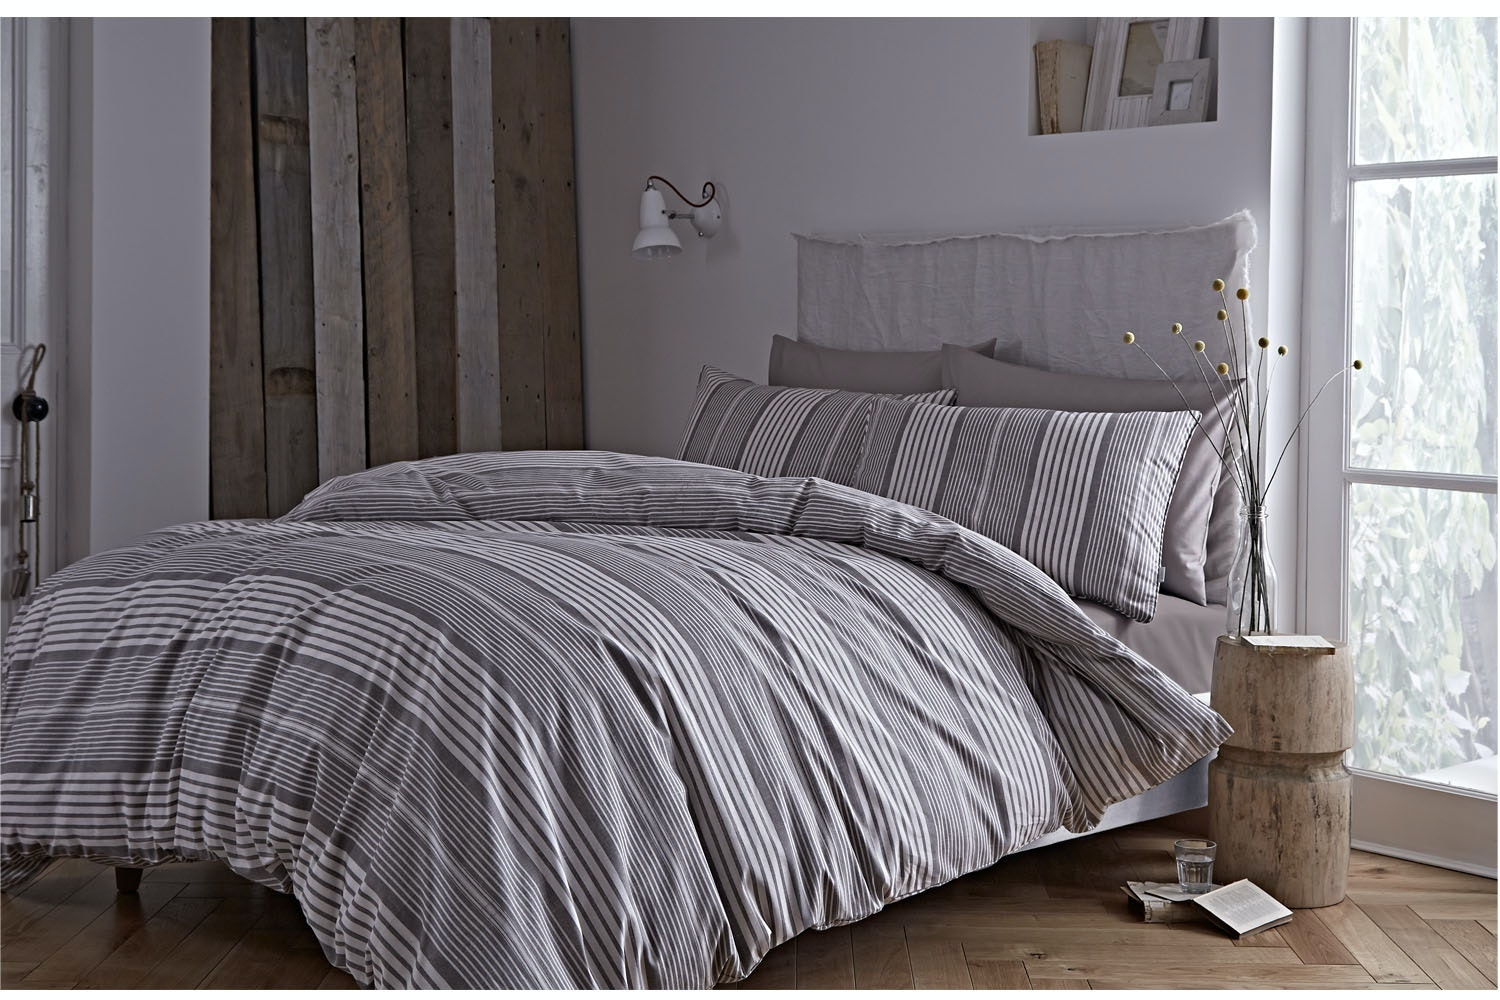 BDB39104RSKQS,Tailored, stripe,Quiltset, Double,duvet,cover,Single,Pillowcase,Oxford,Super, King,